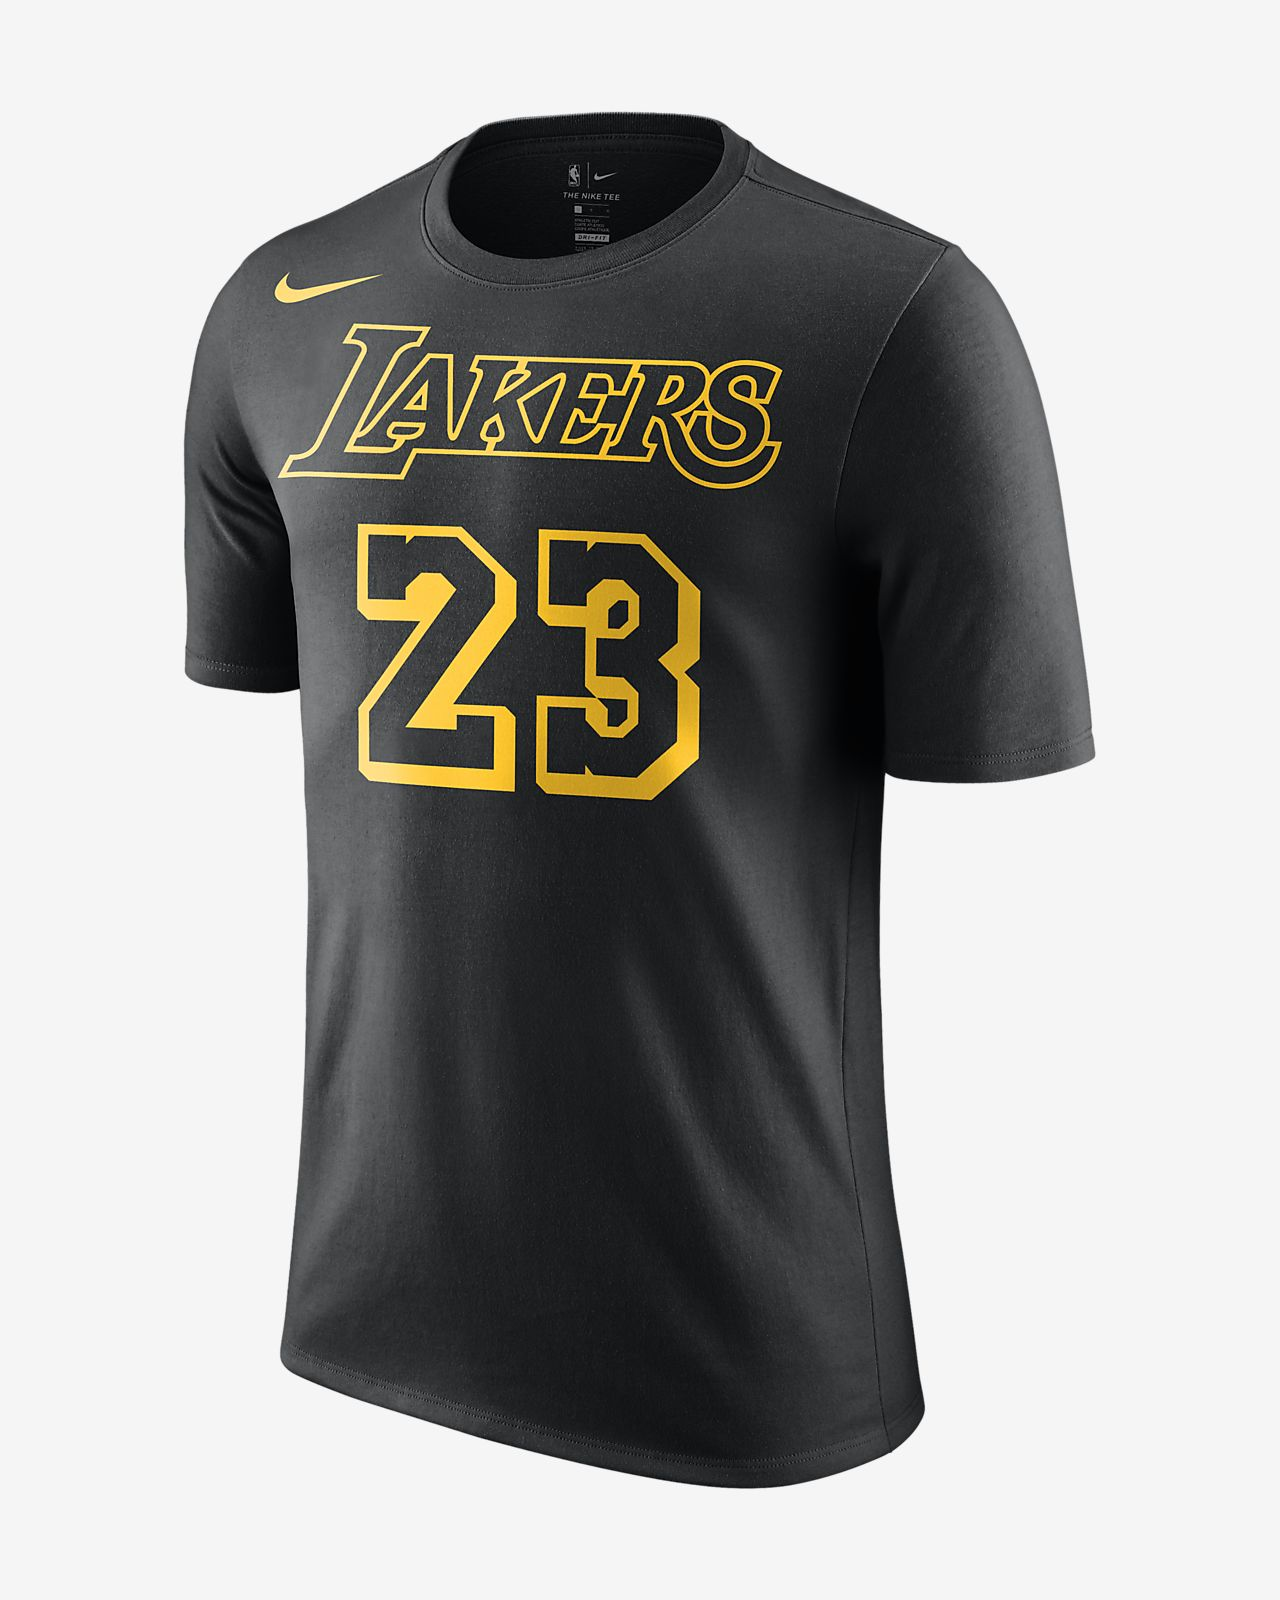 wholesale dealer 05313 670b2 Los Angeles Lakers Icon Name and Number (LeBron James) Big Kids' NBA T-Shirt